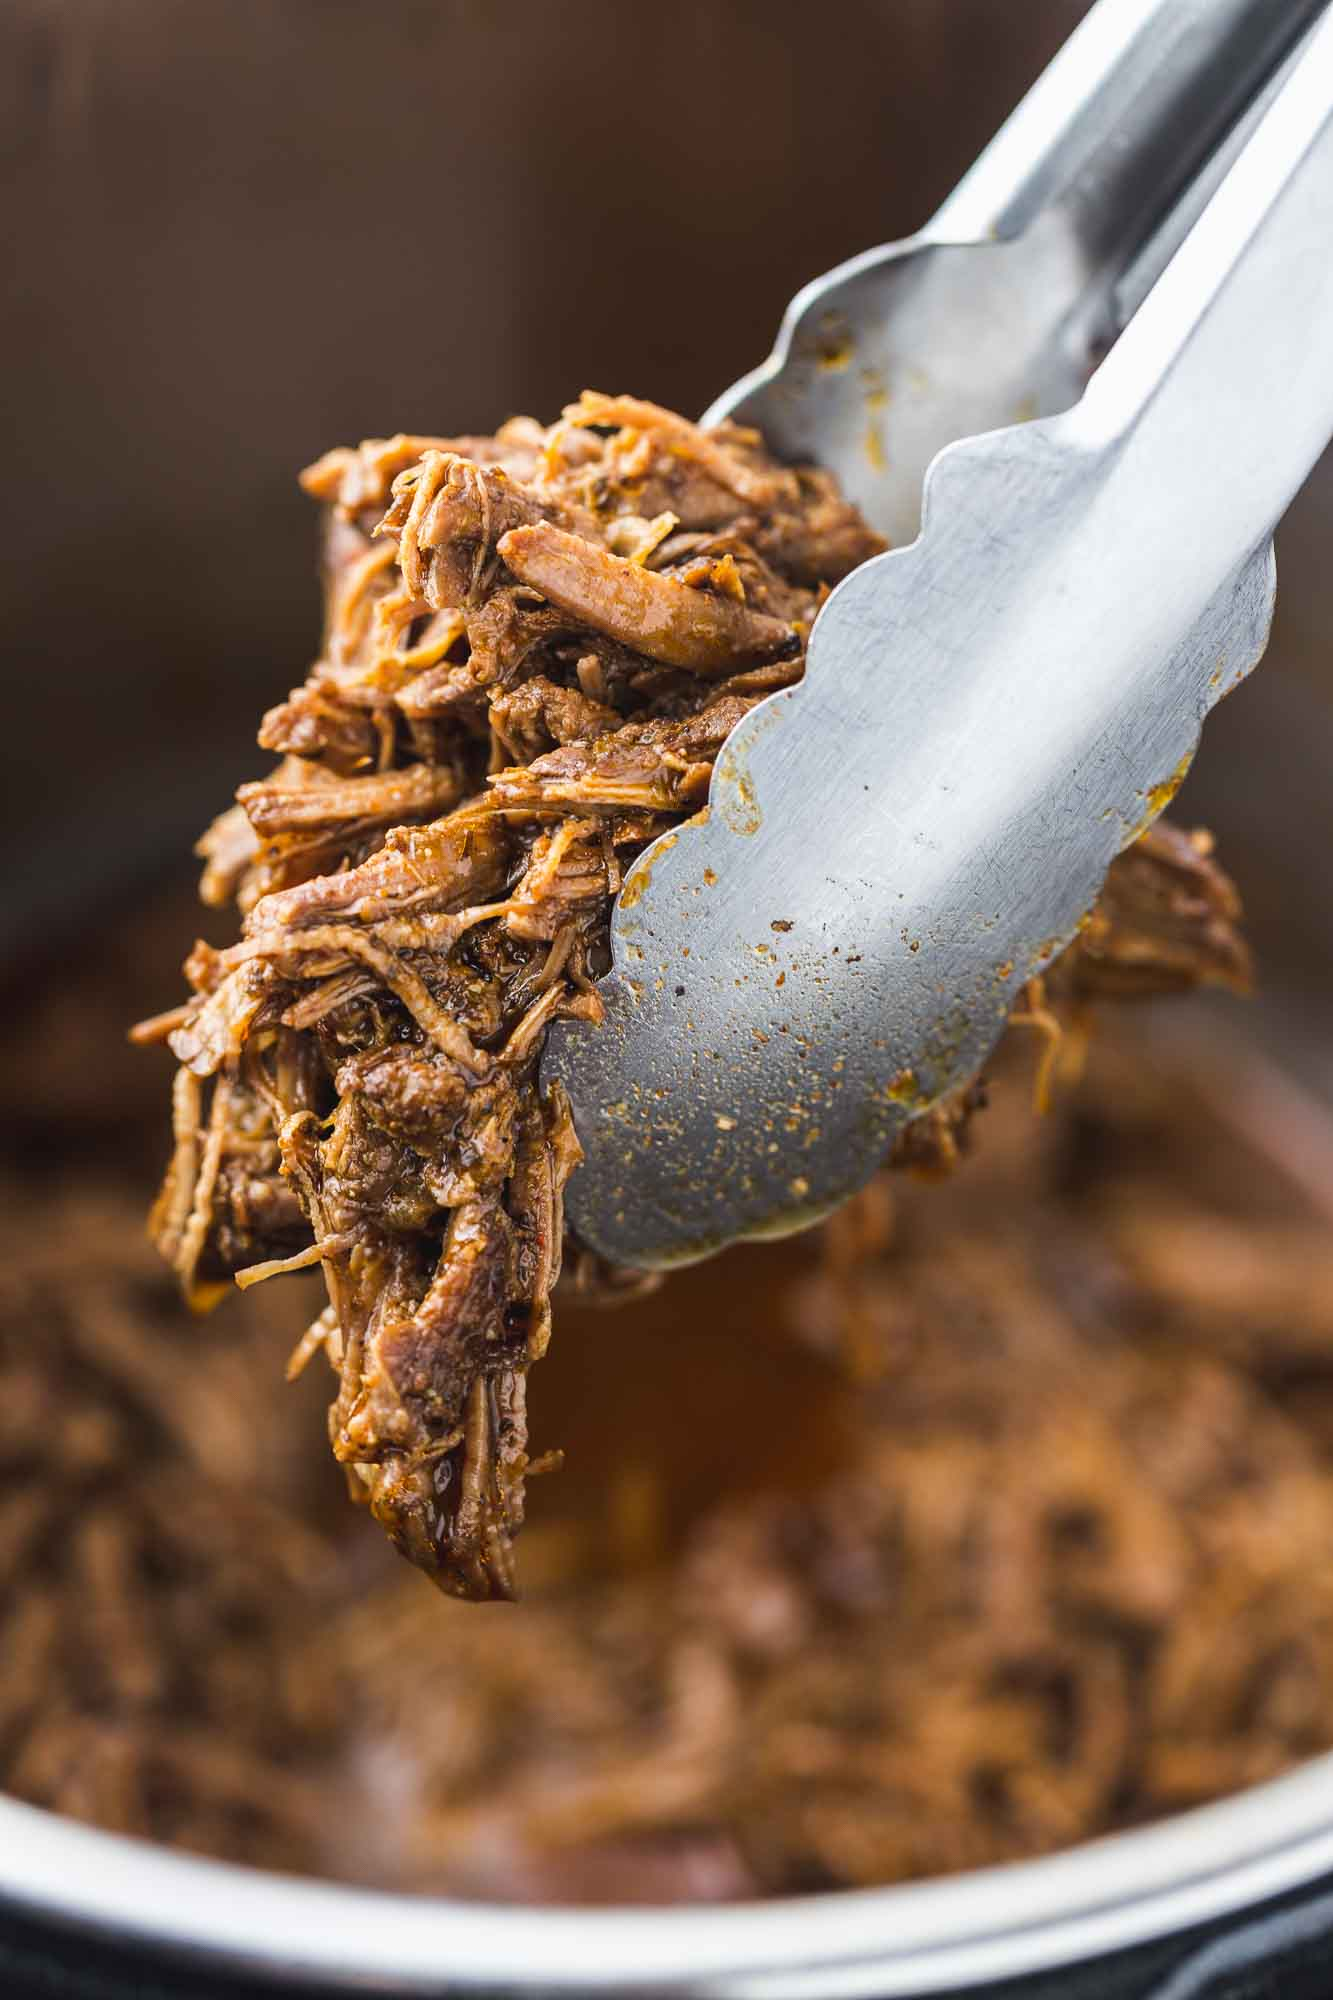 Taking a portion of shredded beef using kitchen tongs